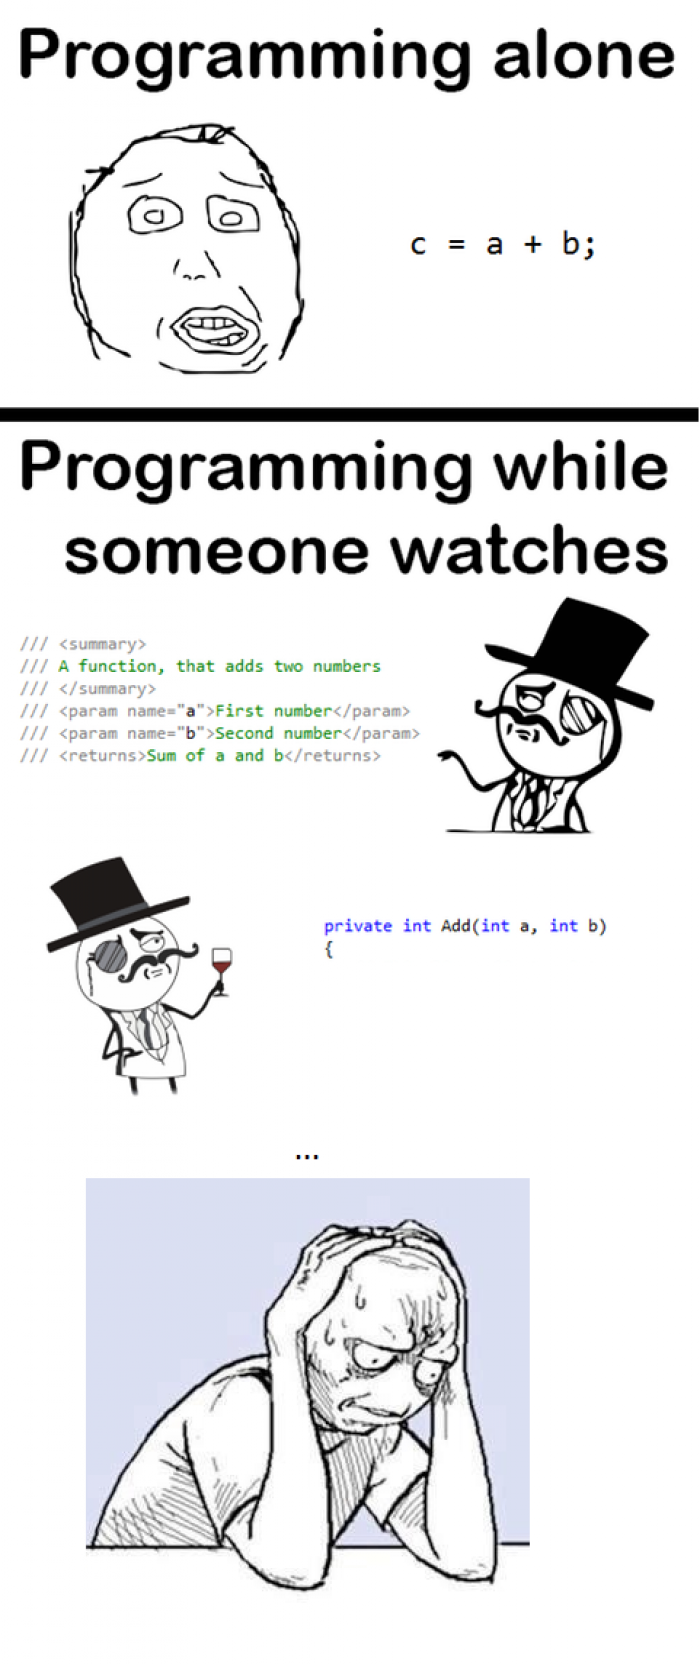 [FIXED] Coding while someone is watching